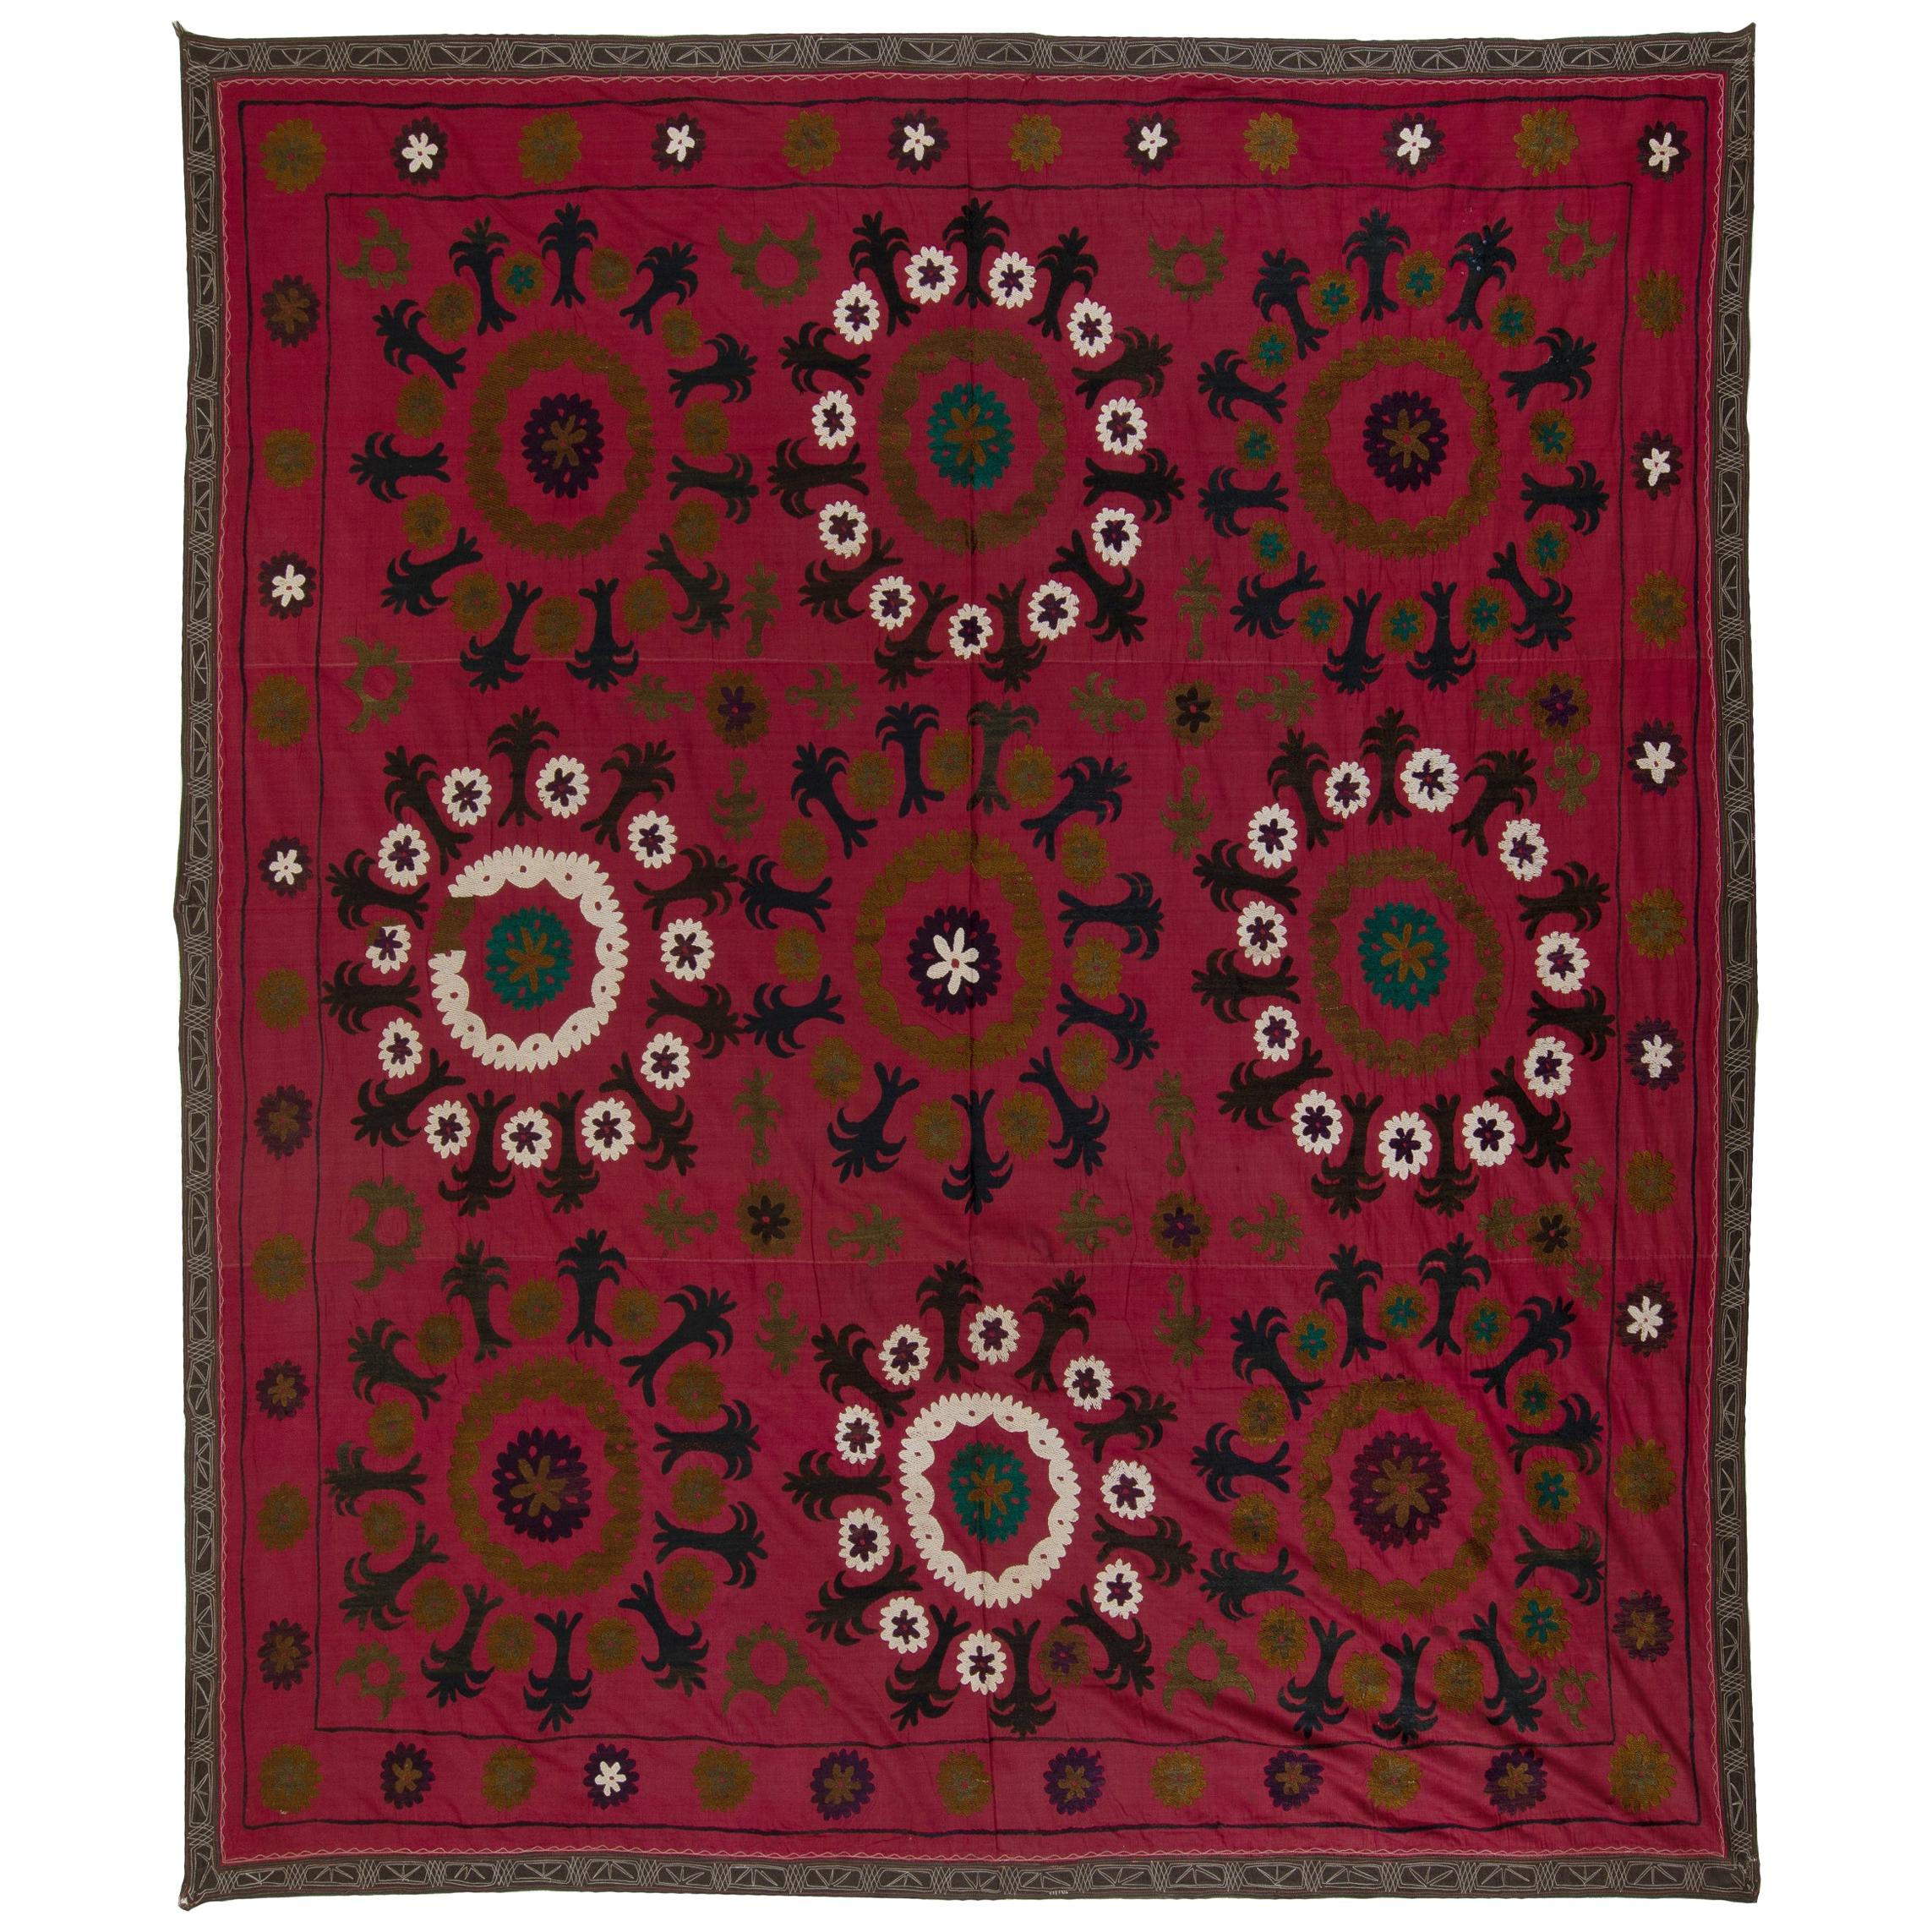 7x7.4 Ft Central Asian Suzani Textile, Embroidered Cotton & Silk Wall Hanging